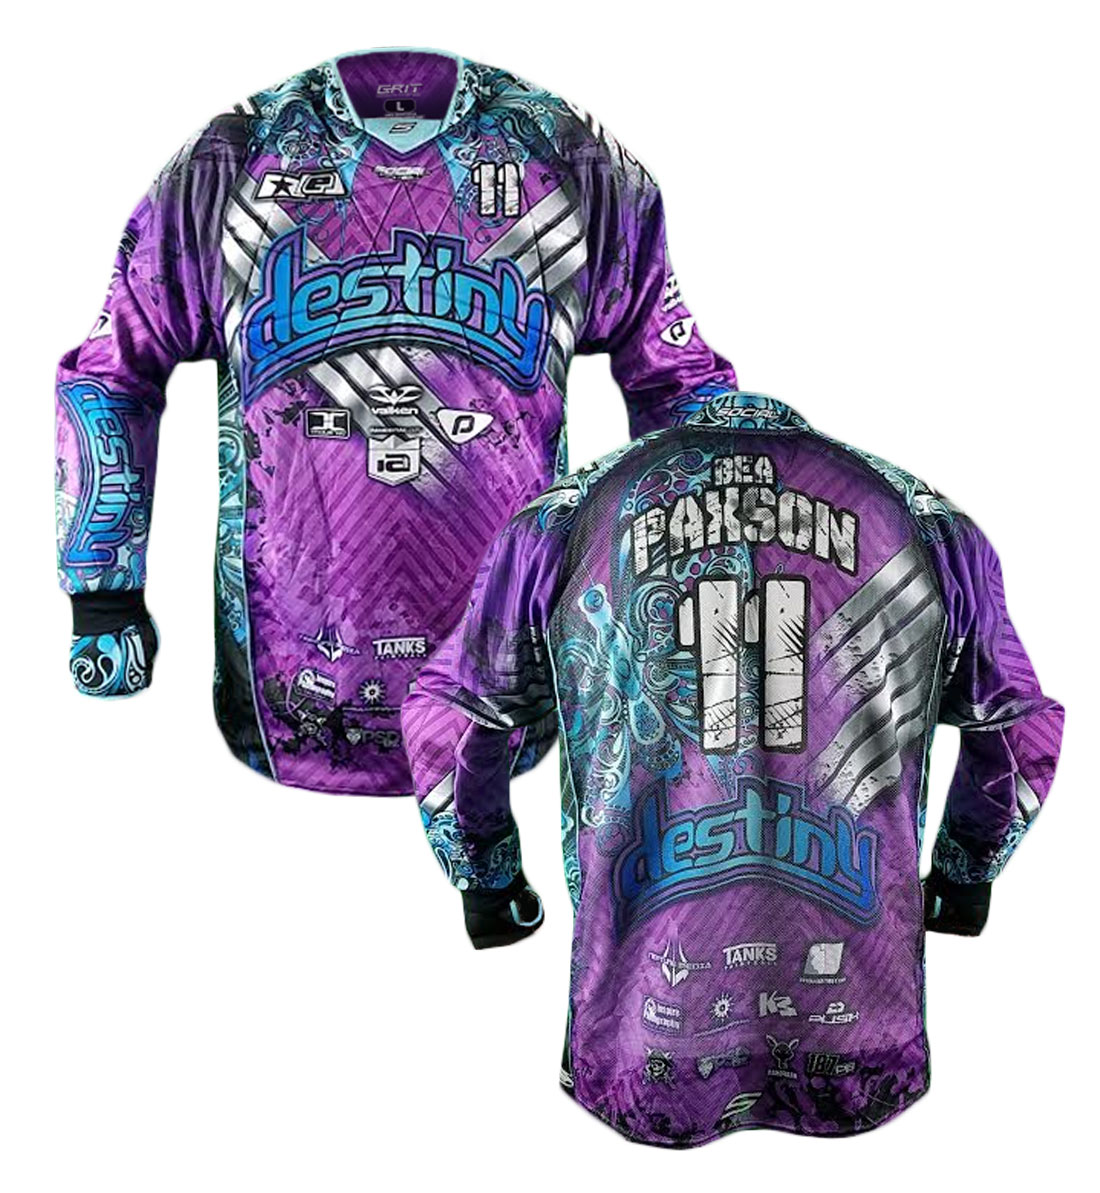 Design my own paintball jersey